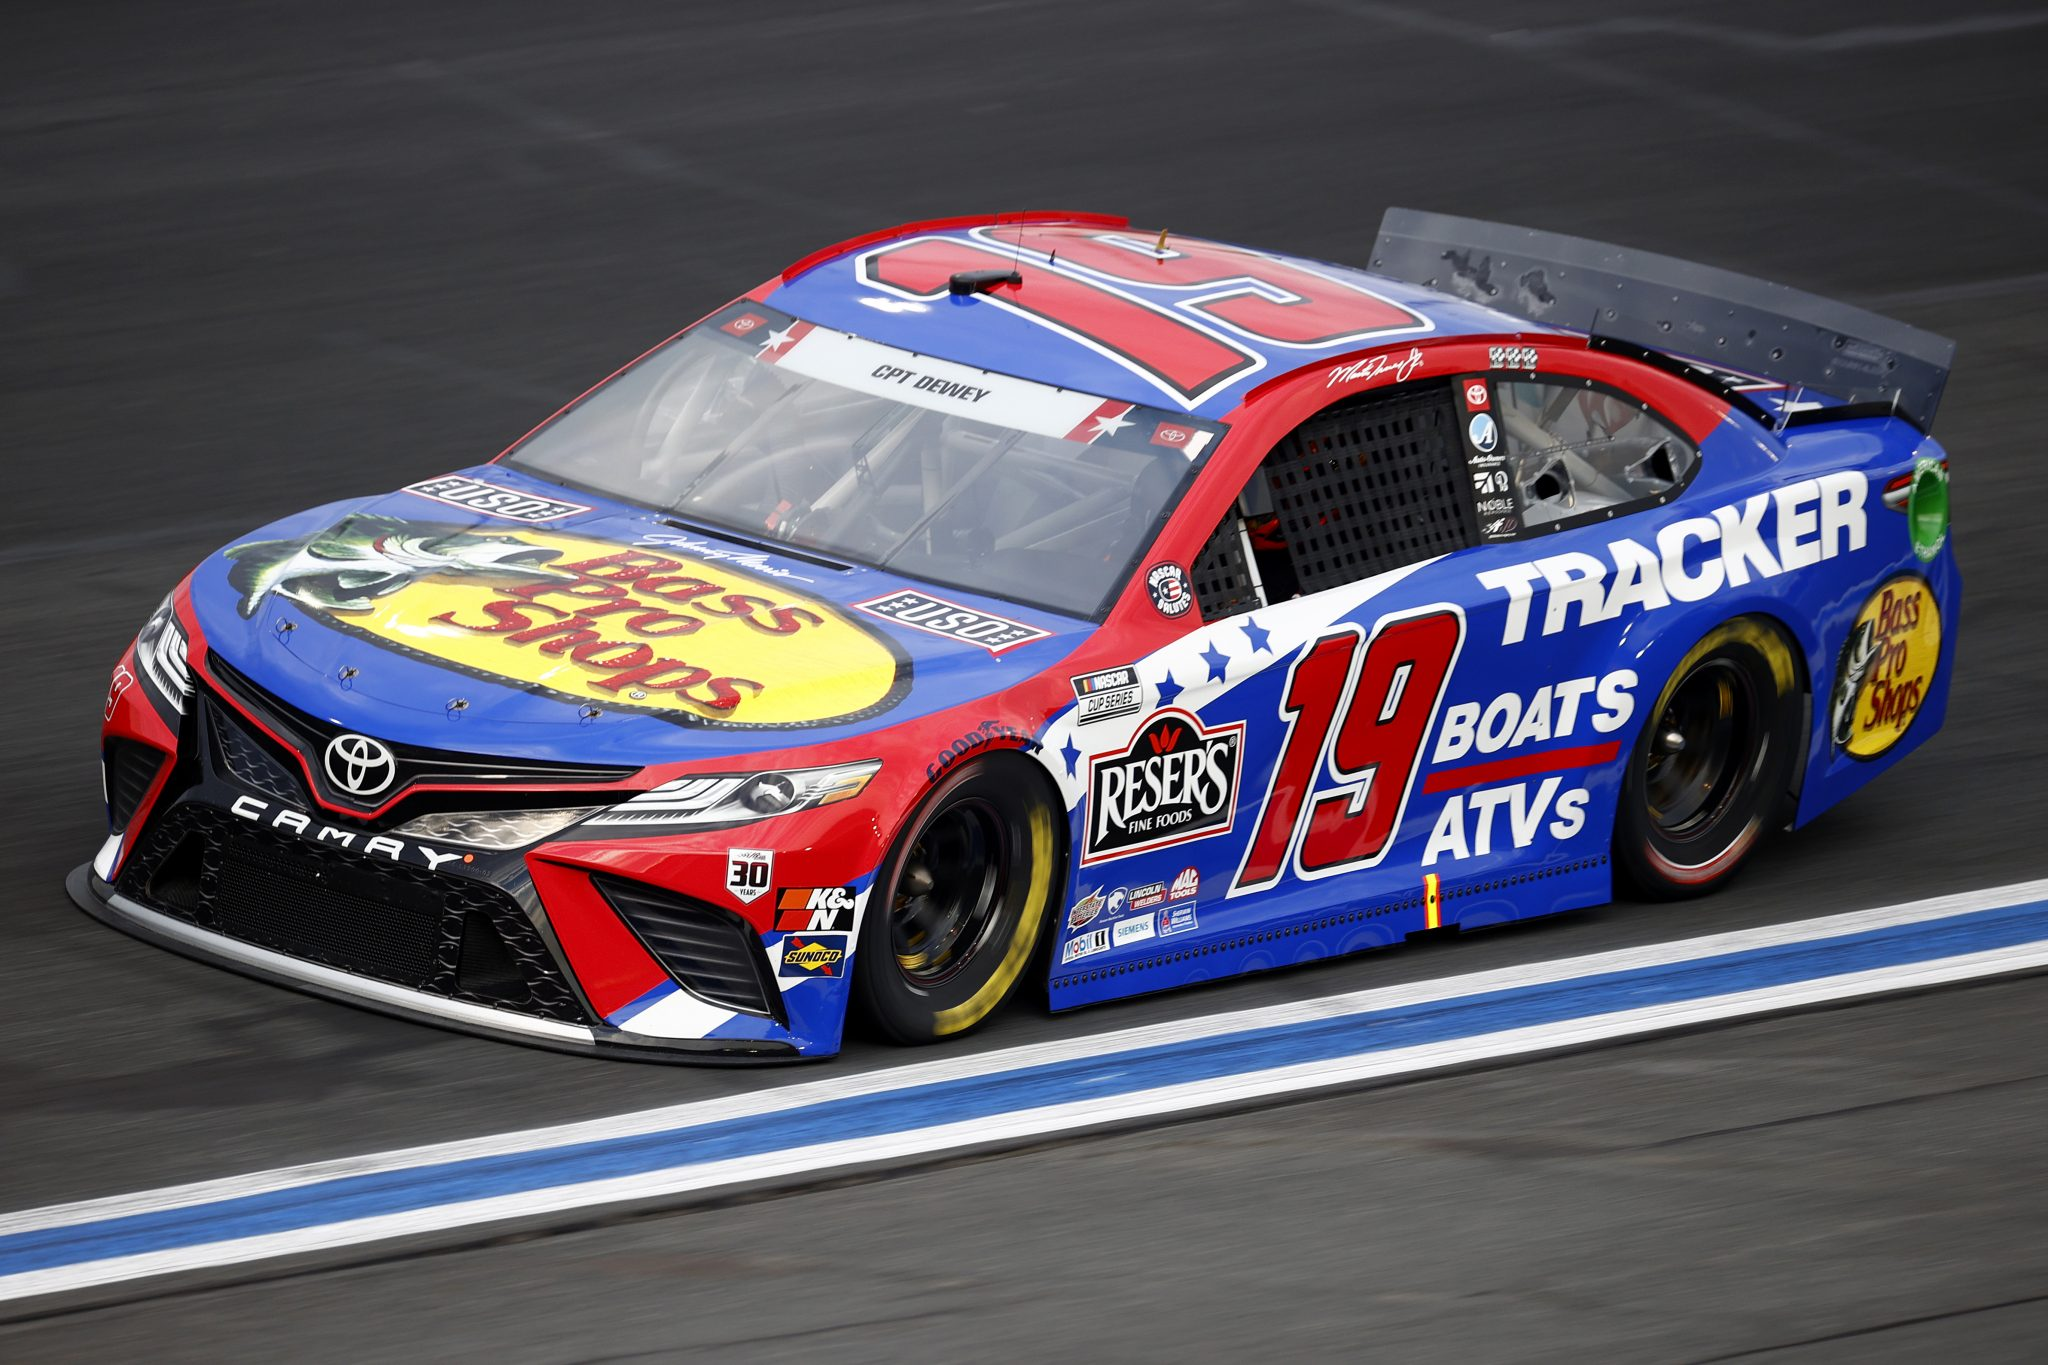 CONCORD, NORTH CAROLINA - MAY 28: Martin Truex Jr., driver of the #19 Bass Pro Shops Red White Blue Toyota, drives during practice for the NASCAR Cup Series Coca-Cola 600 at Charlotte Motor Speedway on May 28, 2021 in Concord, North Carolina. (Photo by Jared C. Tilton/Getty Images) | Getty Images